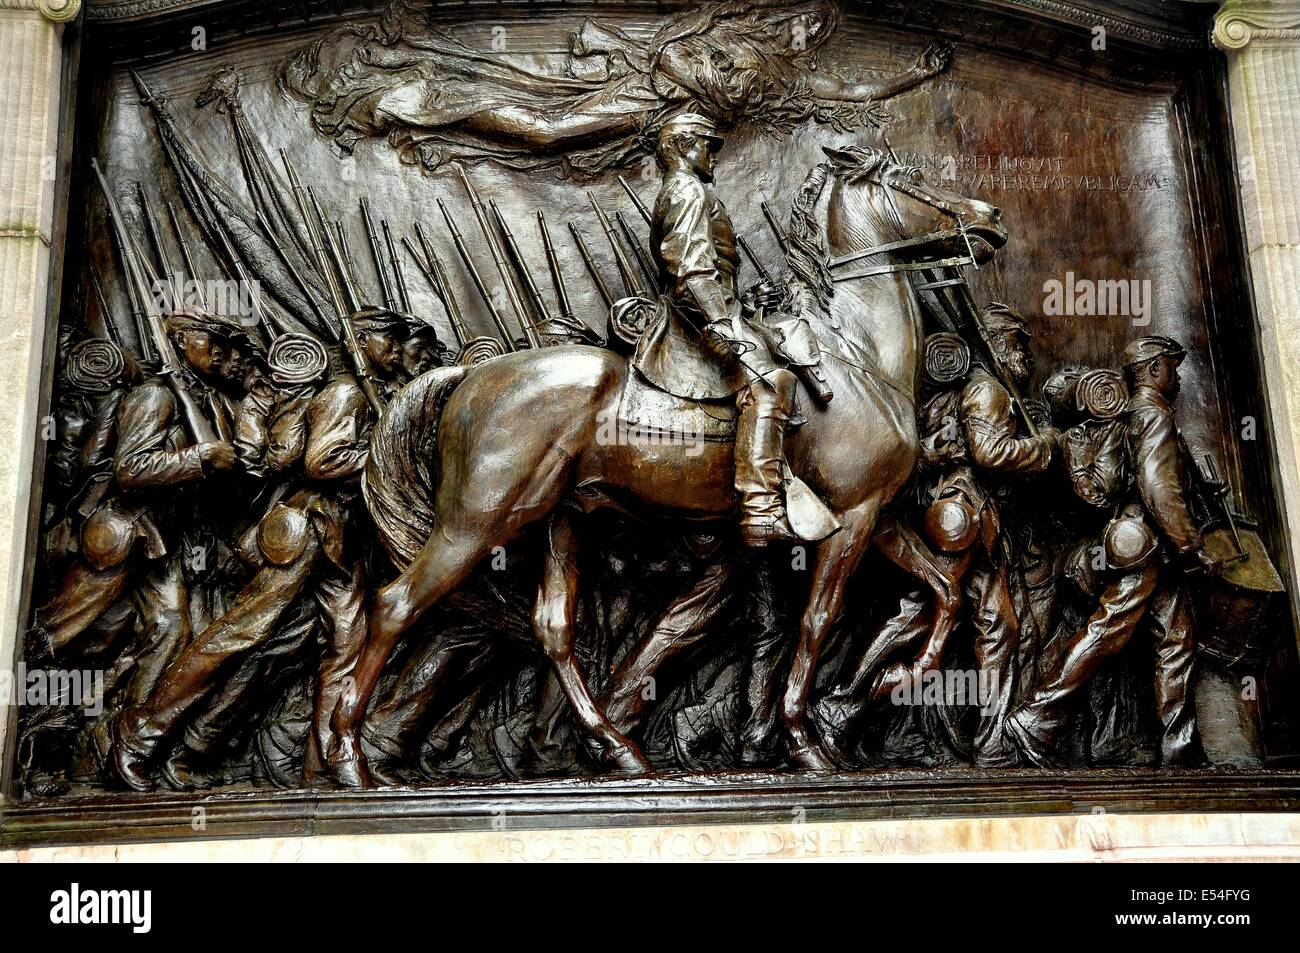 BOSTON, MASSACHUSETTS: Bas relief sculpture of Captain Shaw and his regiment of African-American soldiers - Stock Image